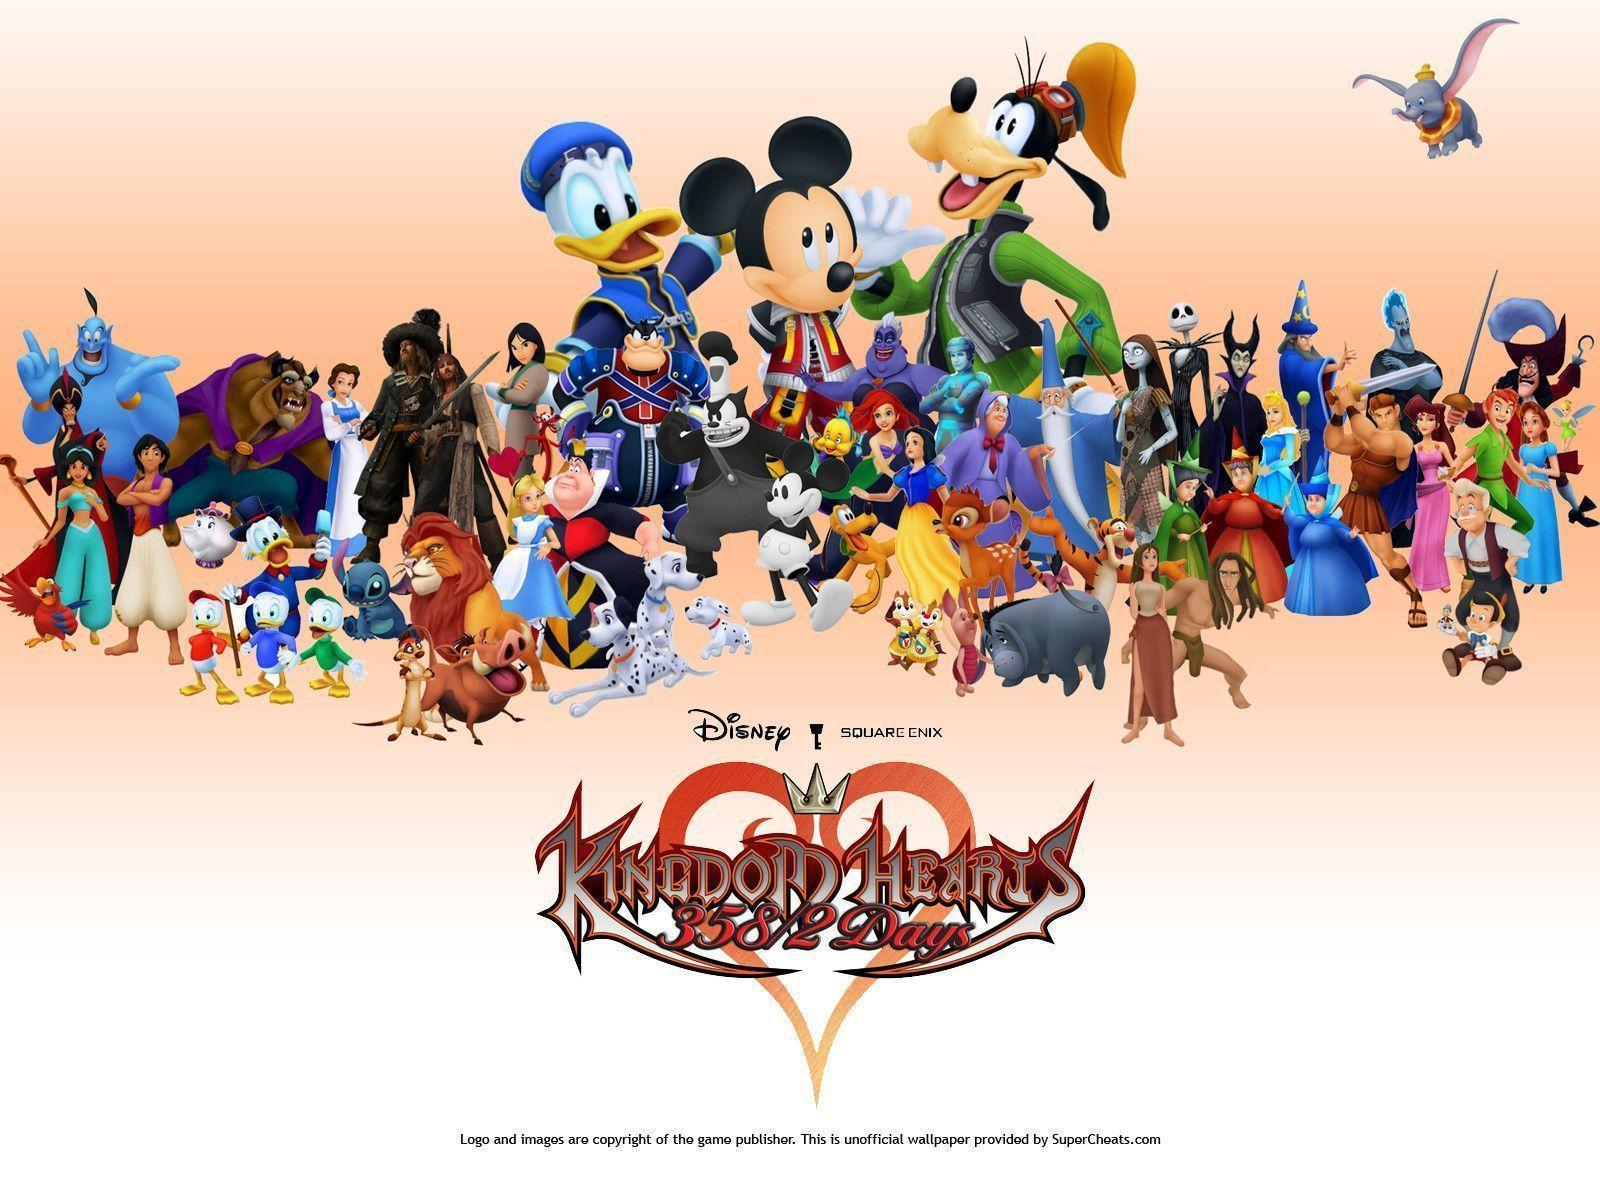 Kingdom Hearts Wallpapers 1600x1200